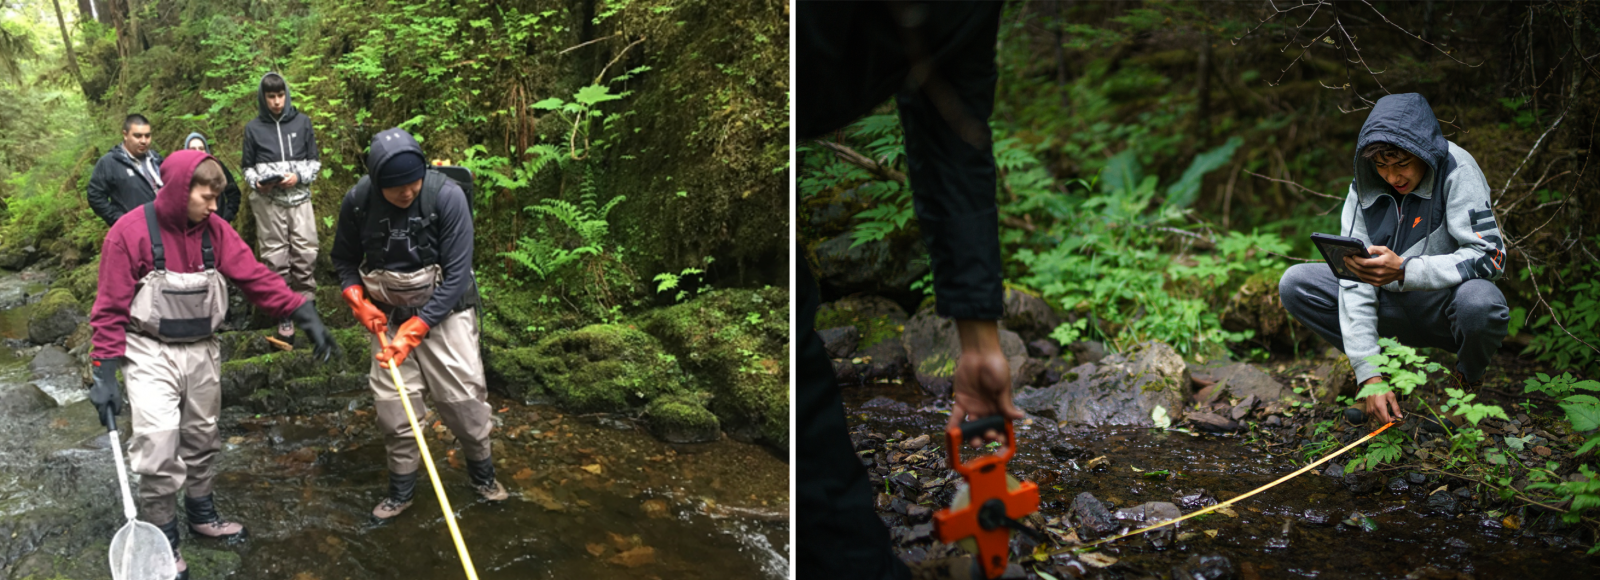 A diptych image. The left side photo shows a handful of young people wearing waders standing in a stream. In the foreground, two male youth carry a net and measuring equipment. In the right side photo, a male youth in a hooded jacket holds the end of a tape measure, while someone not clearly visible in the foreground holds the other end of the tape measurer, across the width of a stream